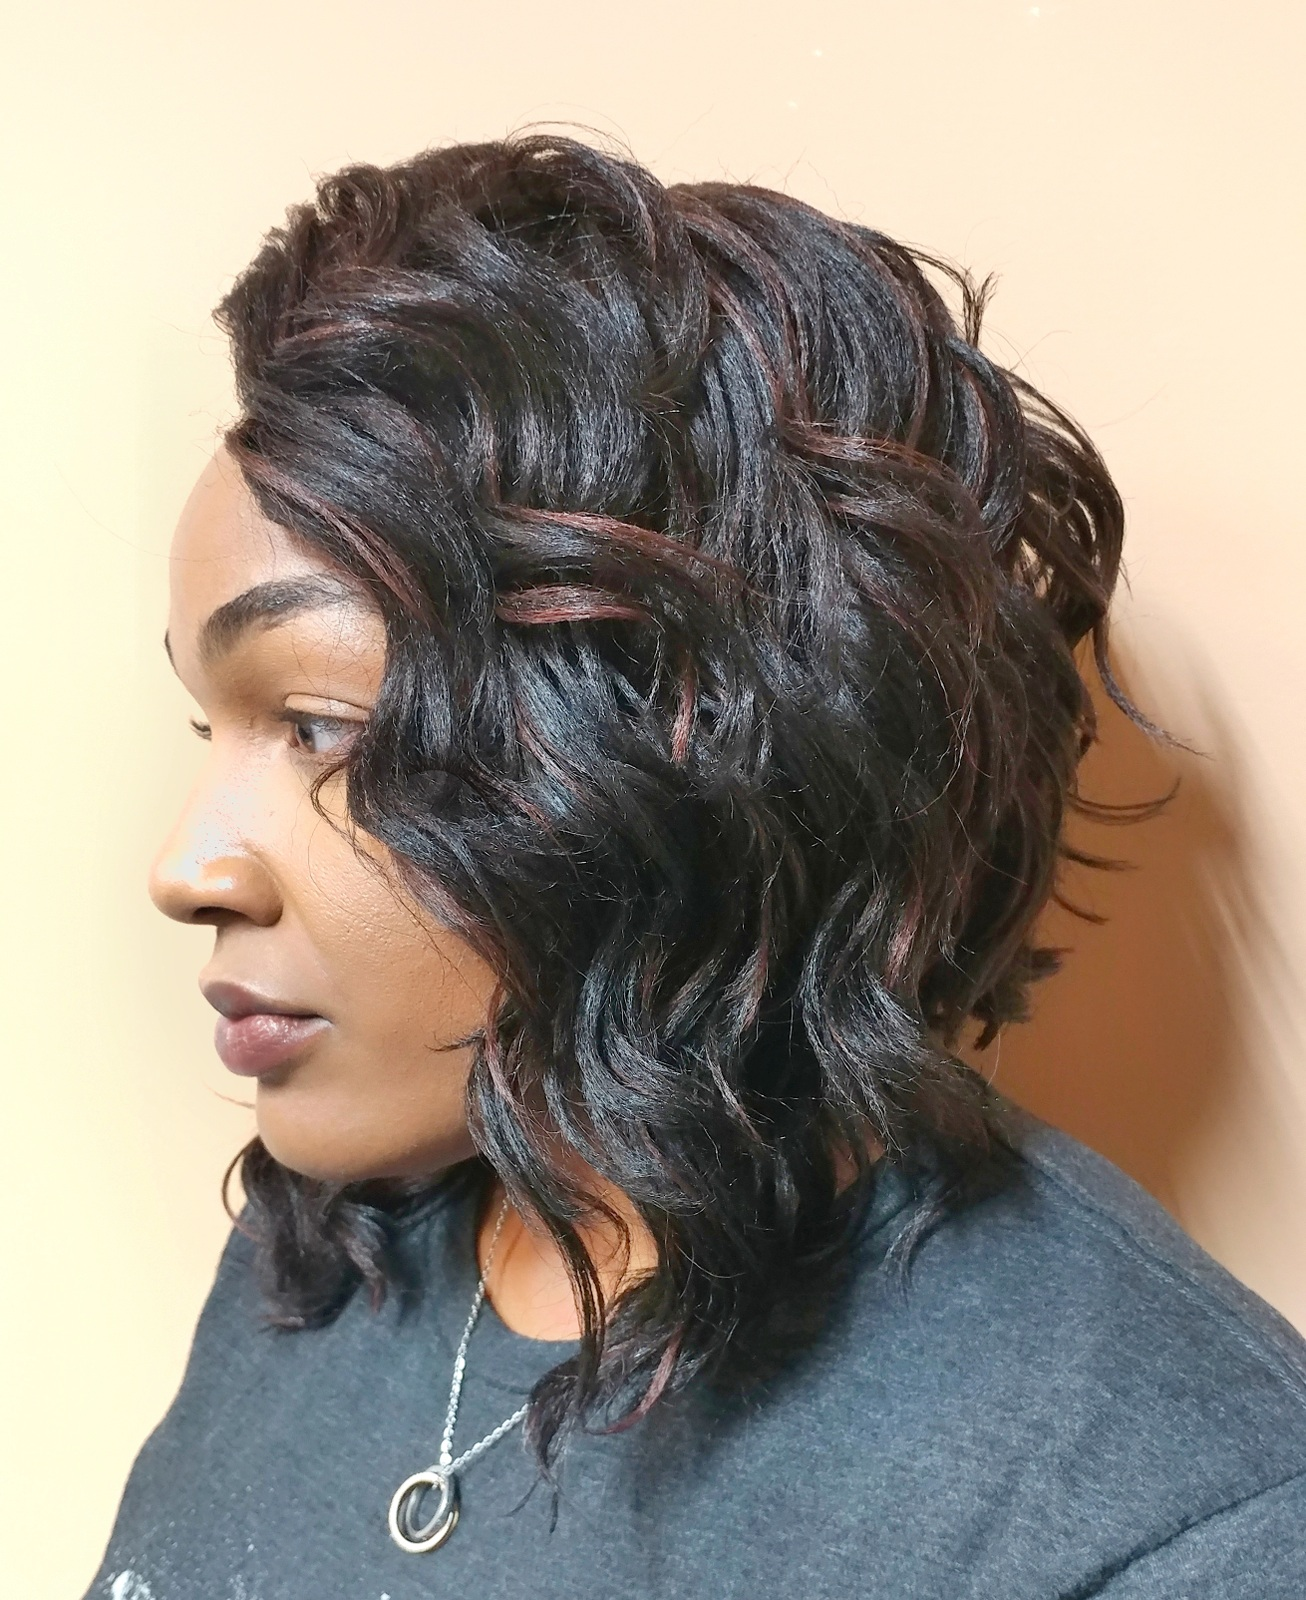 Kima Ocean Wave #2 & 33 Inverted Bob